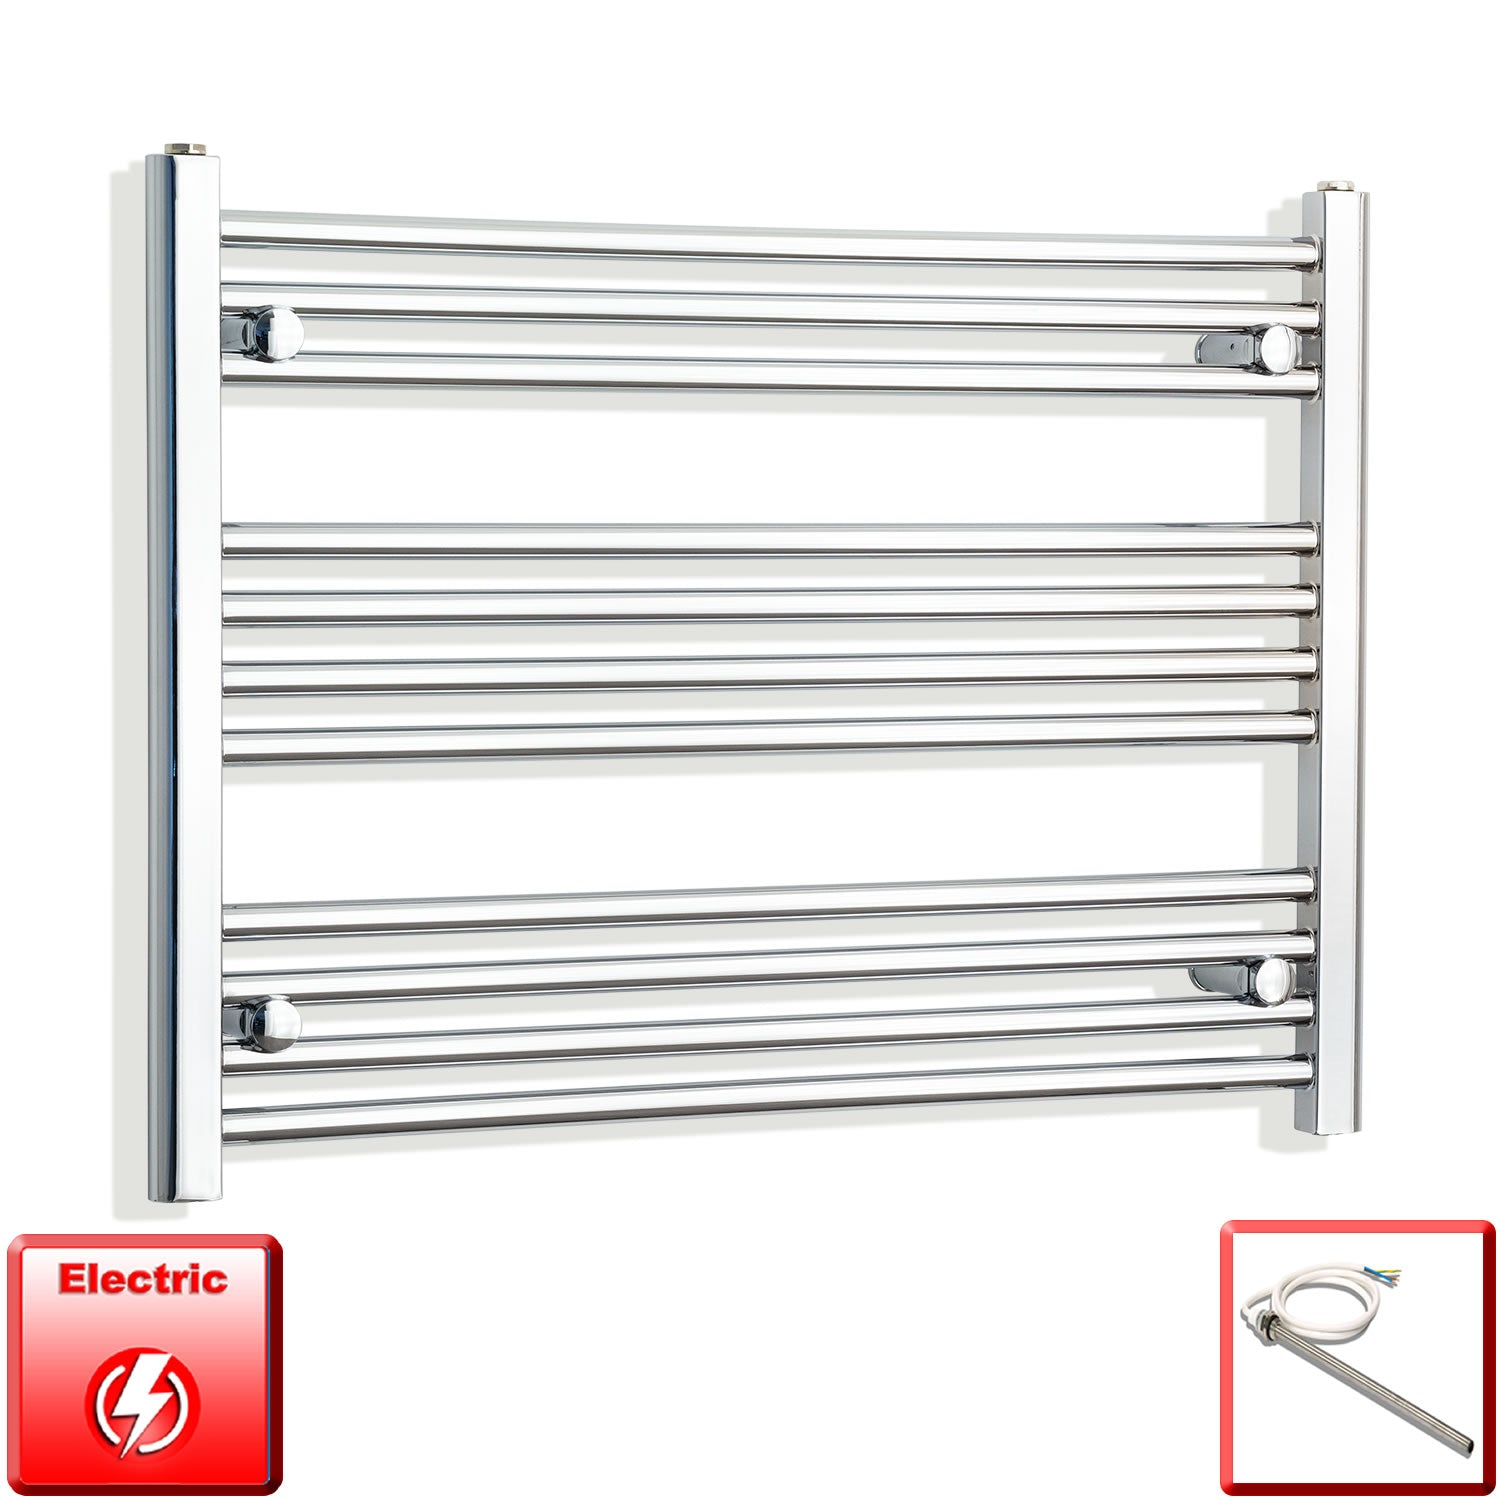 900mm Wide 600mm High Pre-Filled Chrome Electric Towel Rail Radiator With Single Heat Element